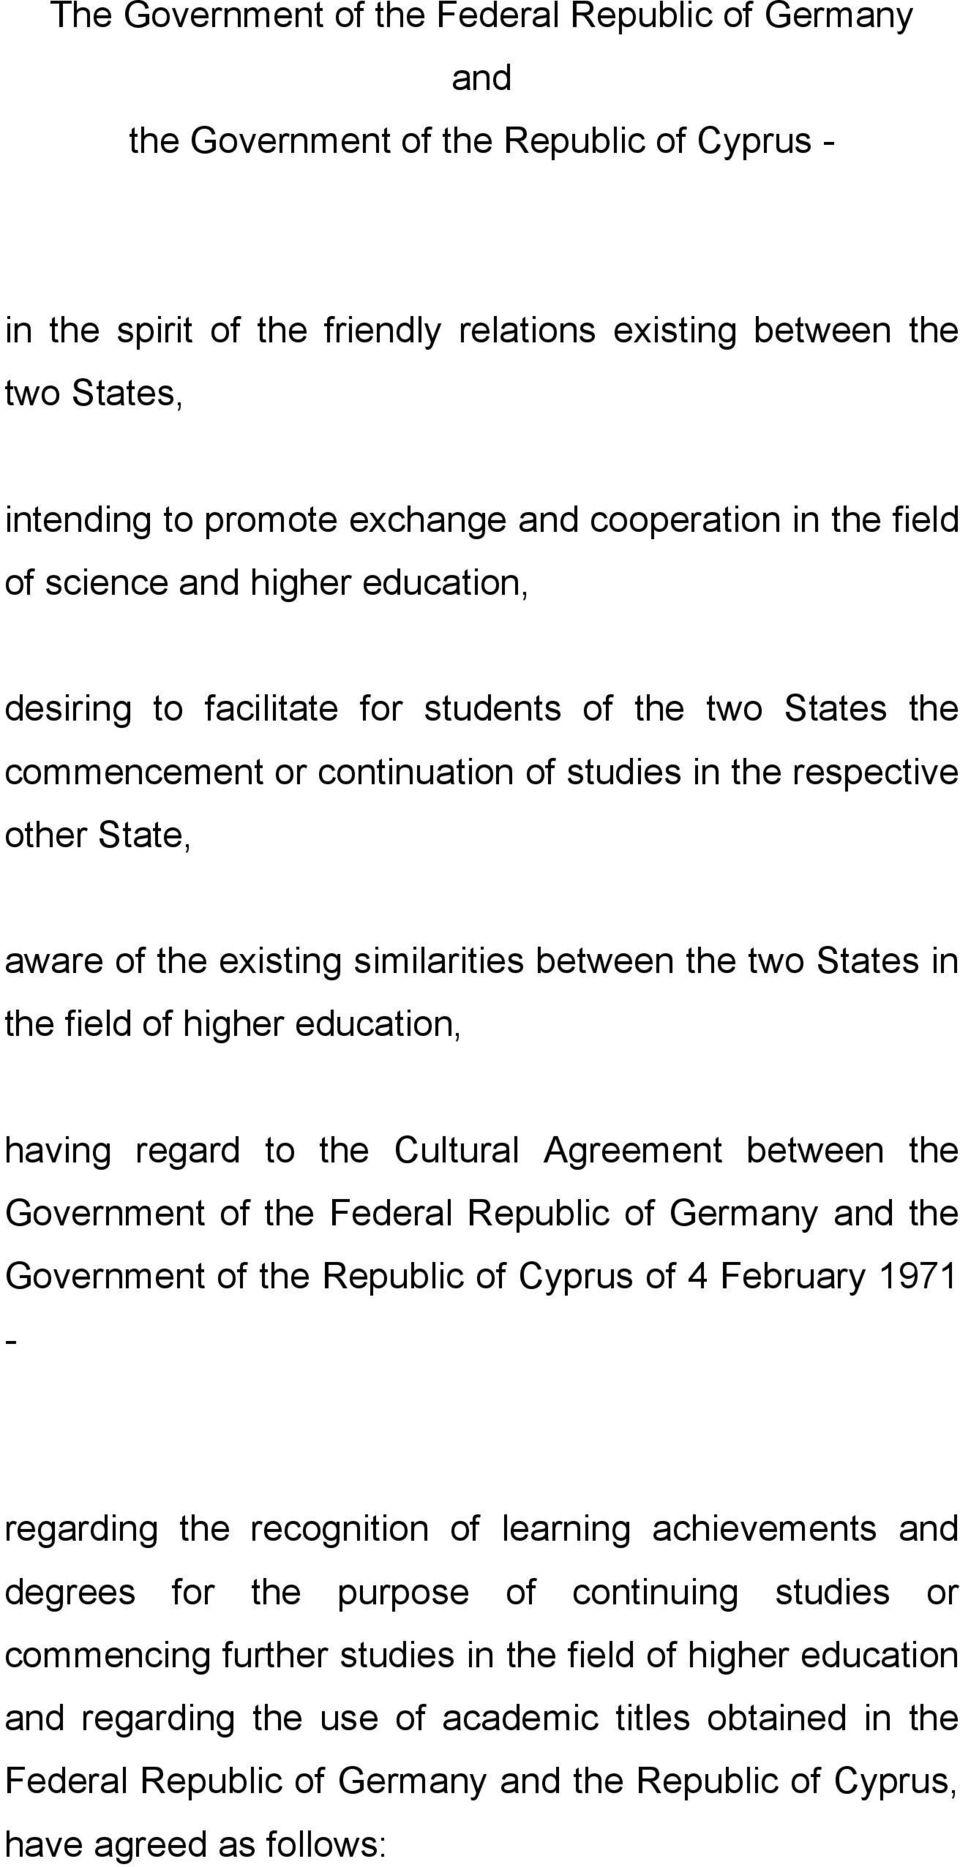 the existing similarities between the two States in the field of higher education, having regard to the Cultural Agreement between the Government of the Federal Republic of Germany and the Government